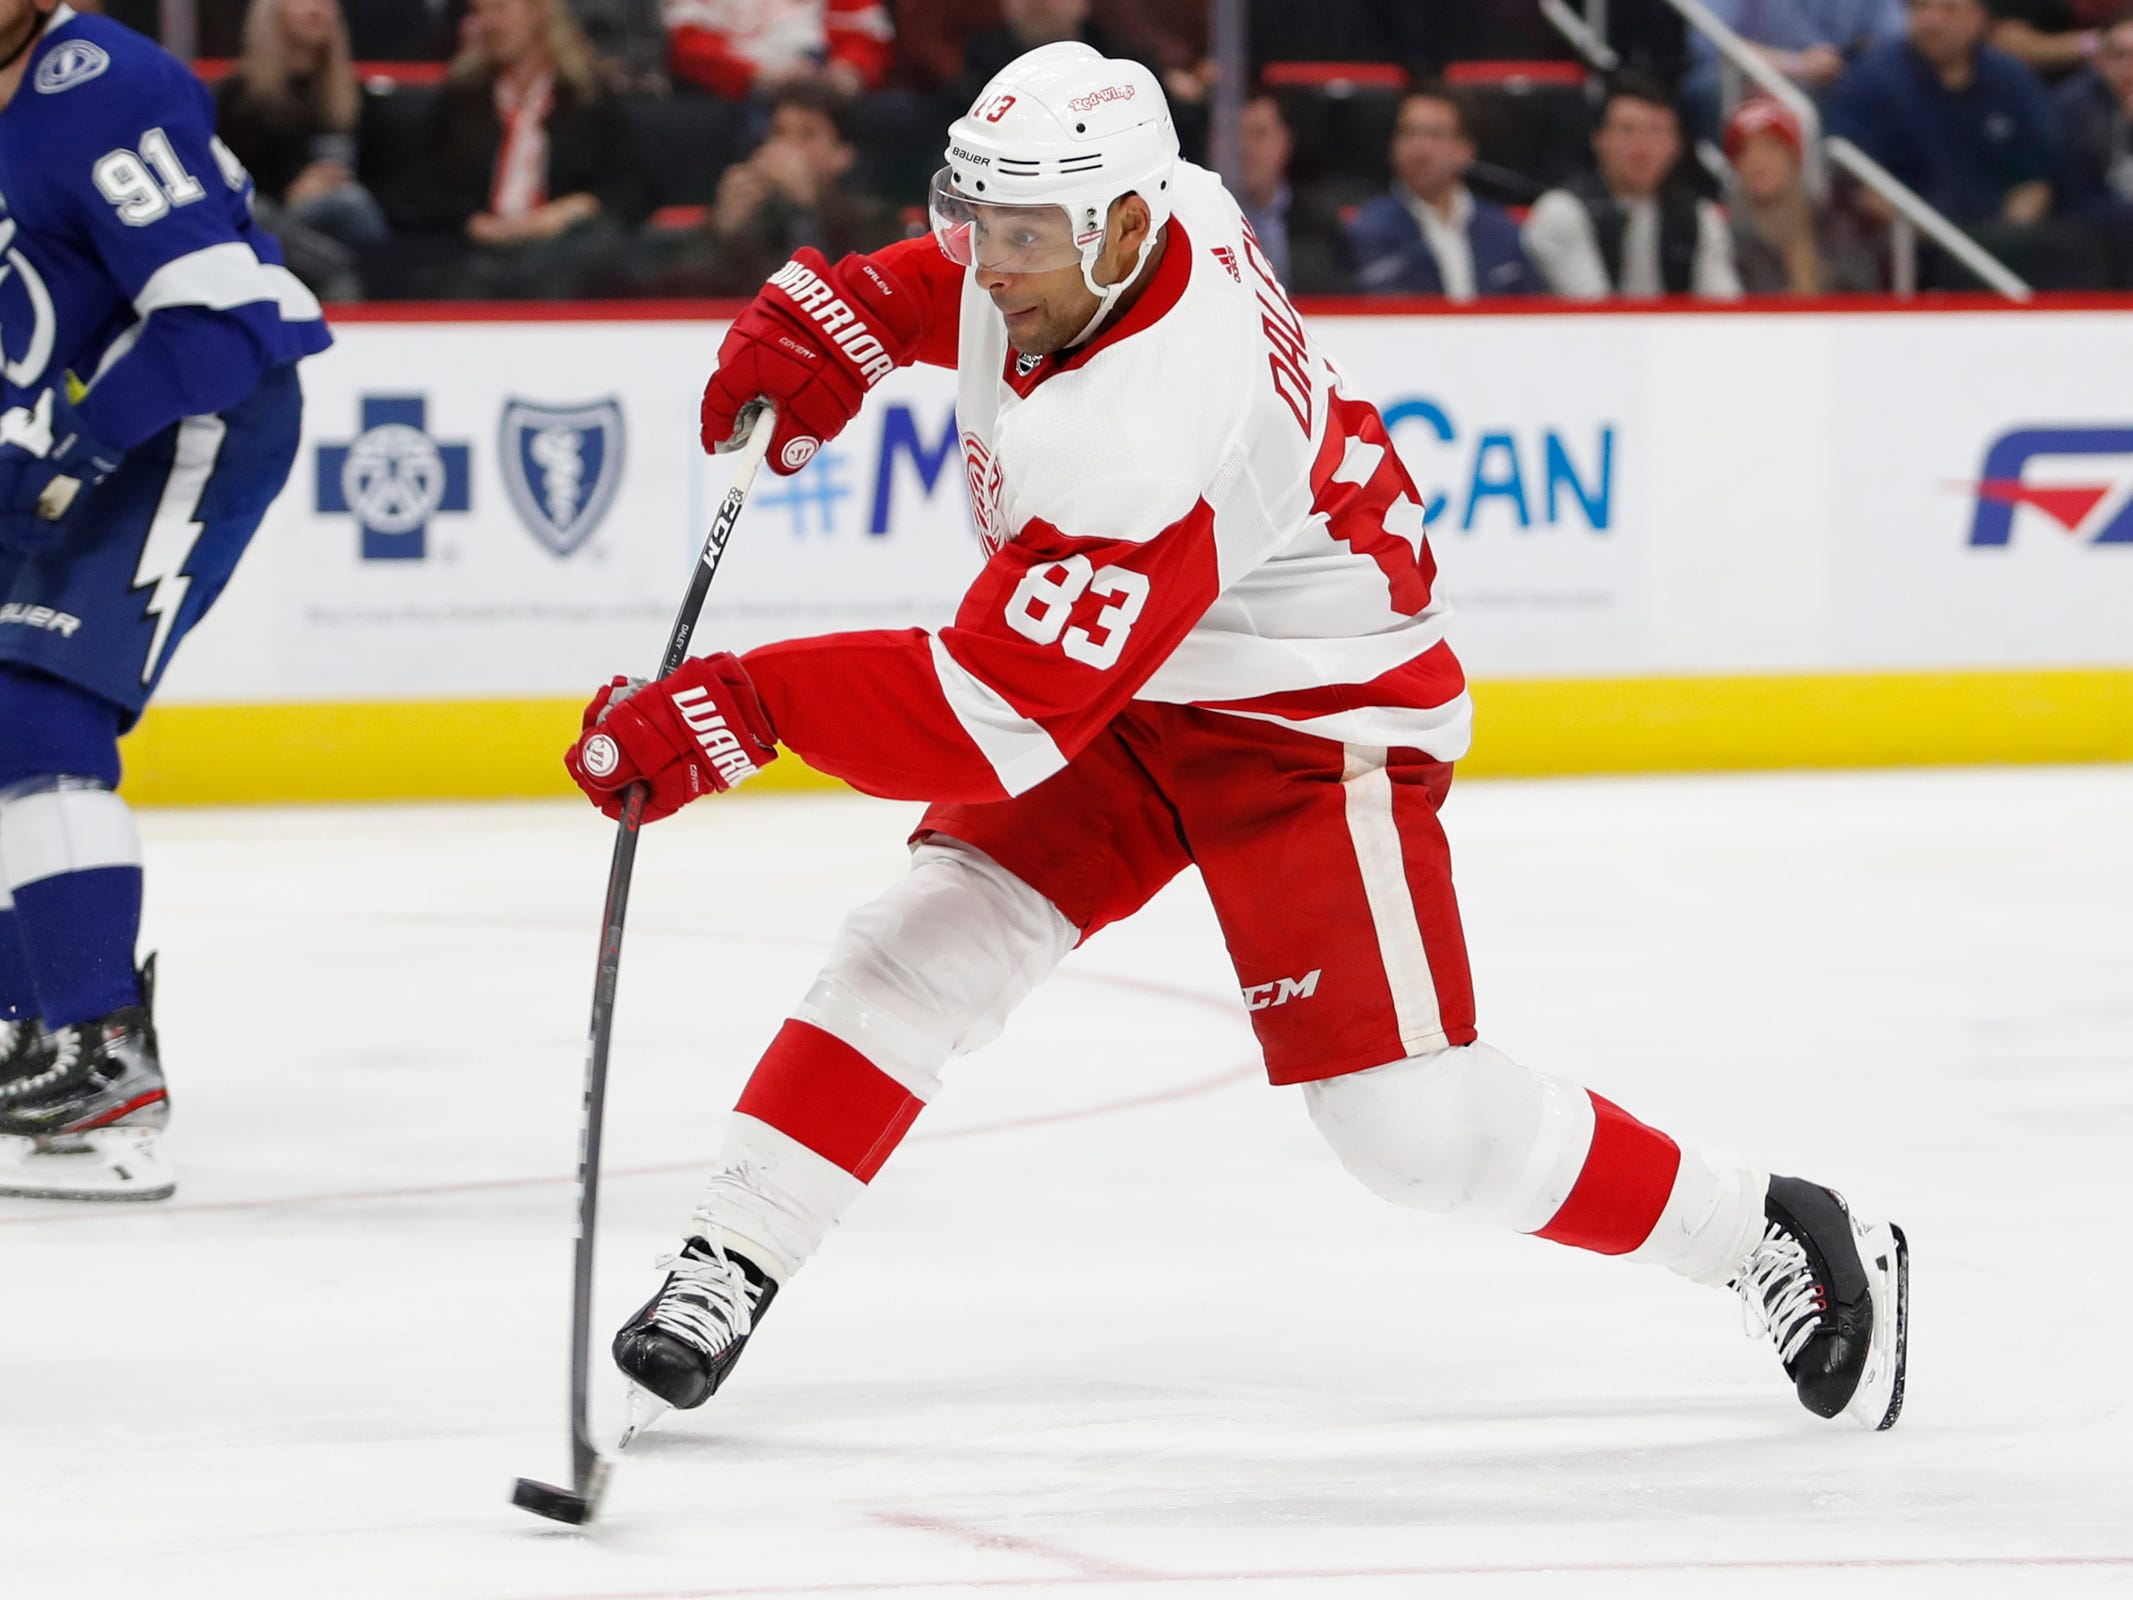 Detroit Red Wings defenseman Trevor Daley (83) takes a shot during the second period against the Tampa Bay Lightning at Little Caesars Arena on Thursday, March 14, 2019, in Detroit.